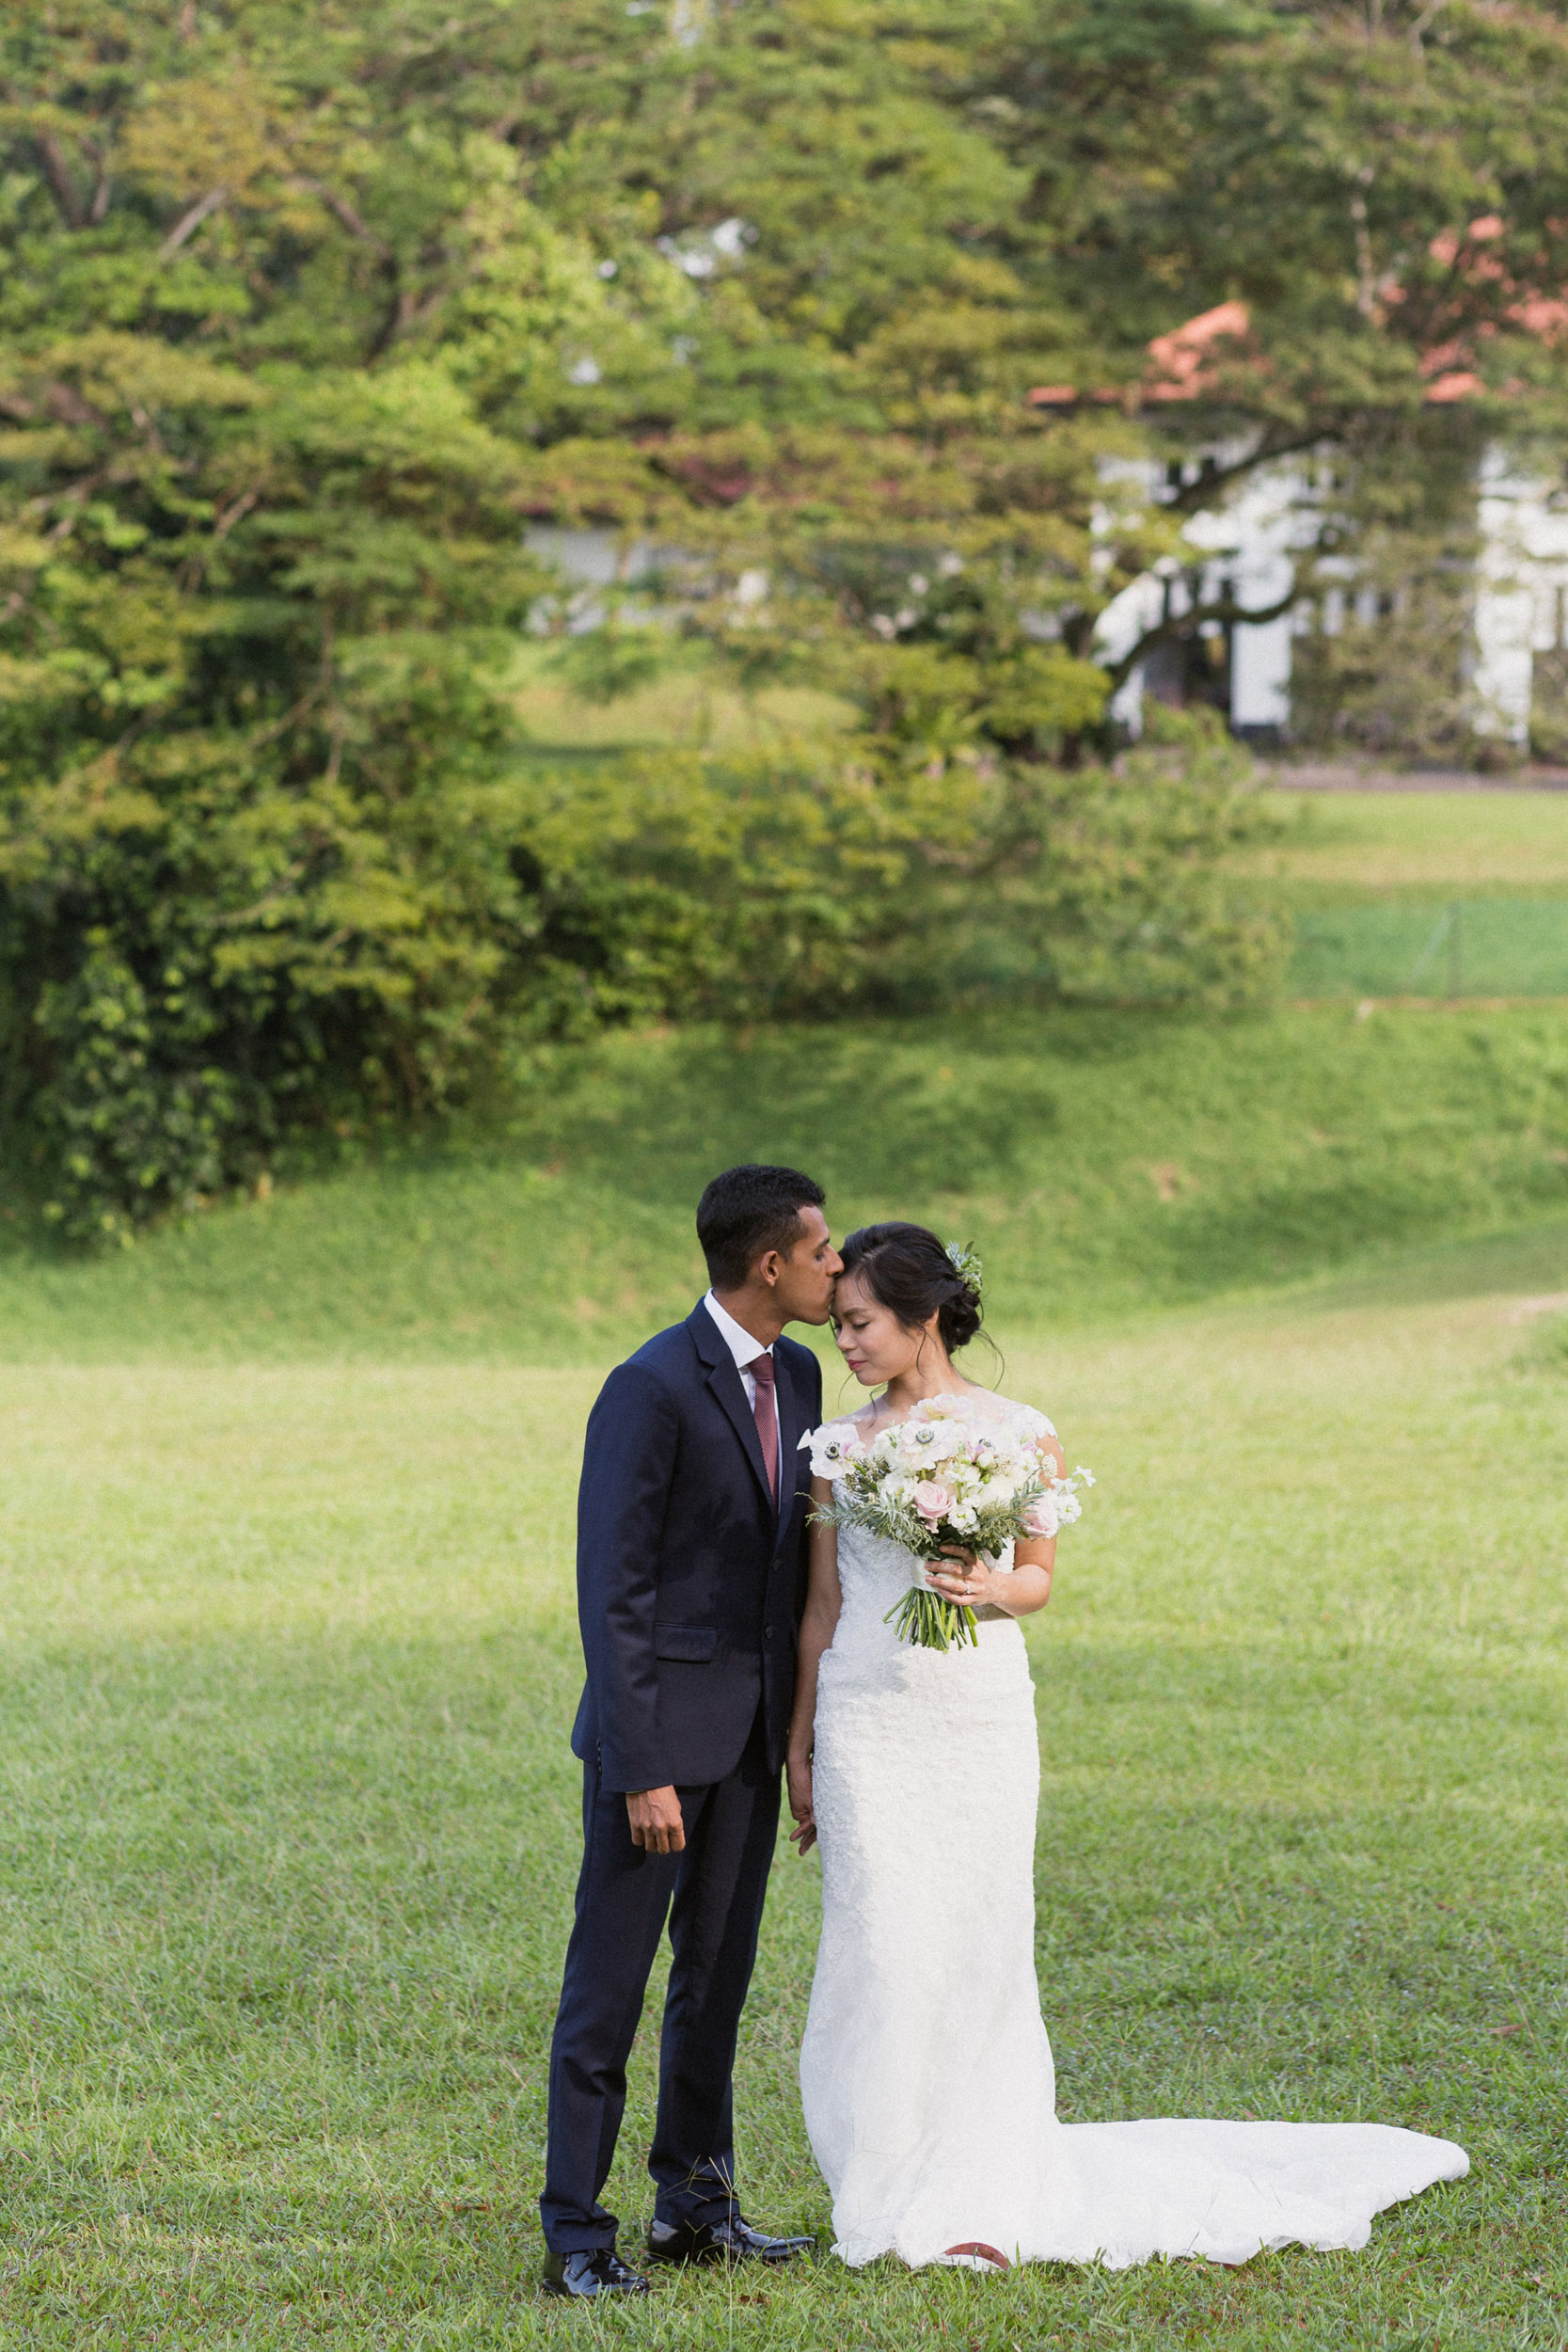 singapore-wedding-photographer-wemadethese-suriya-xinqi-14.jpg